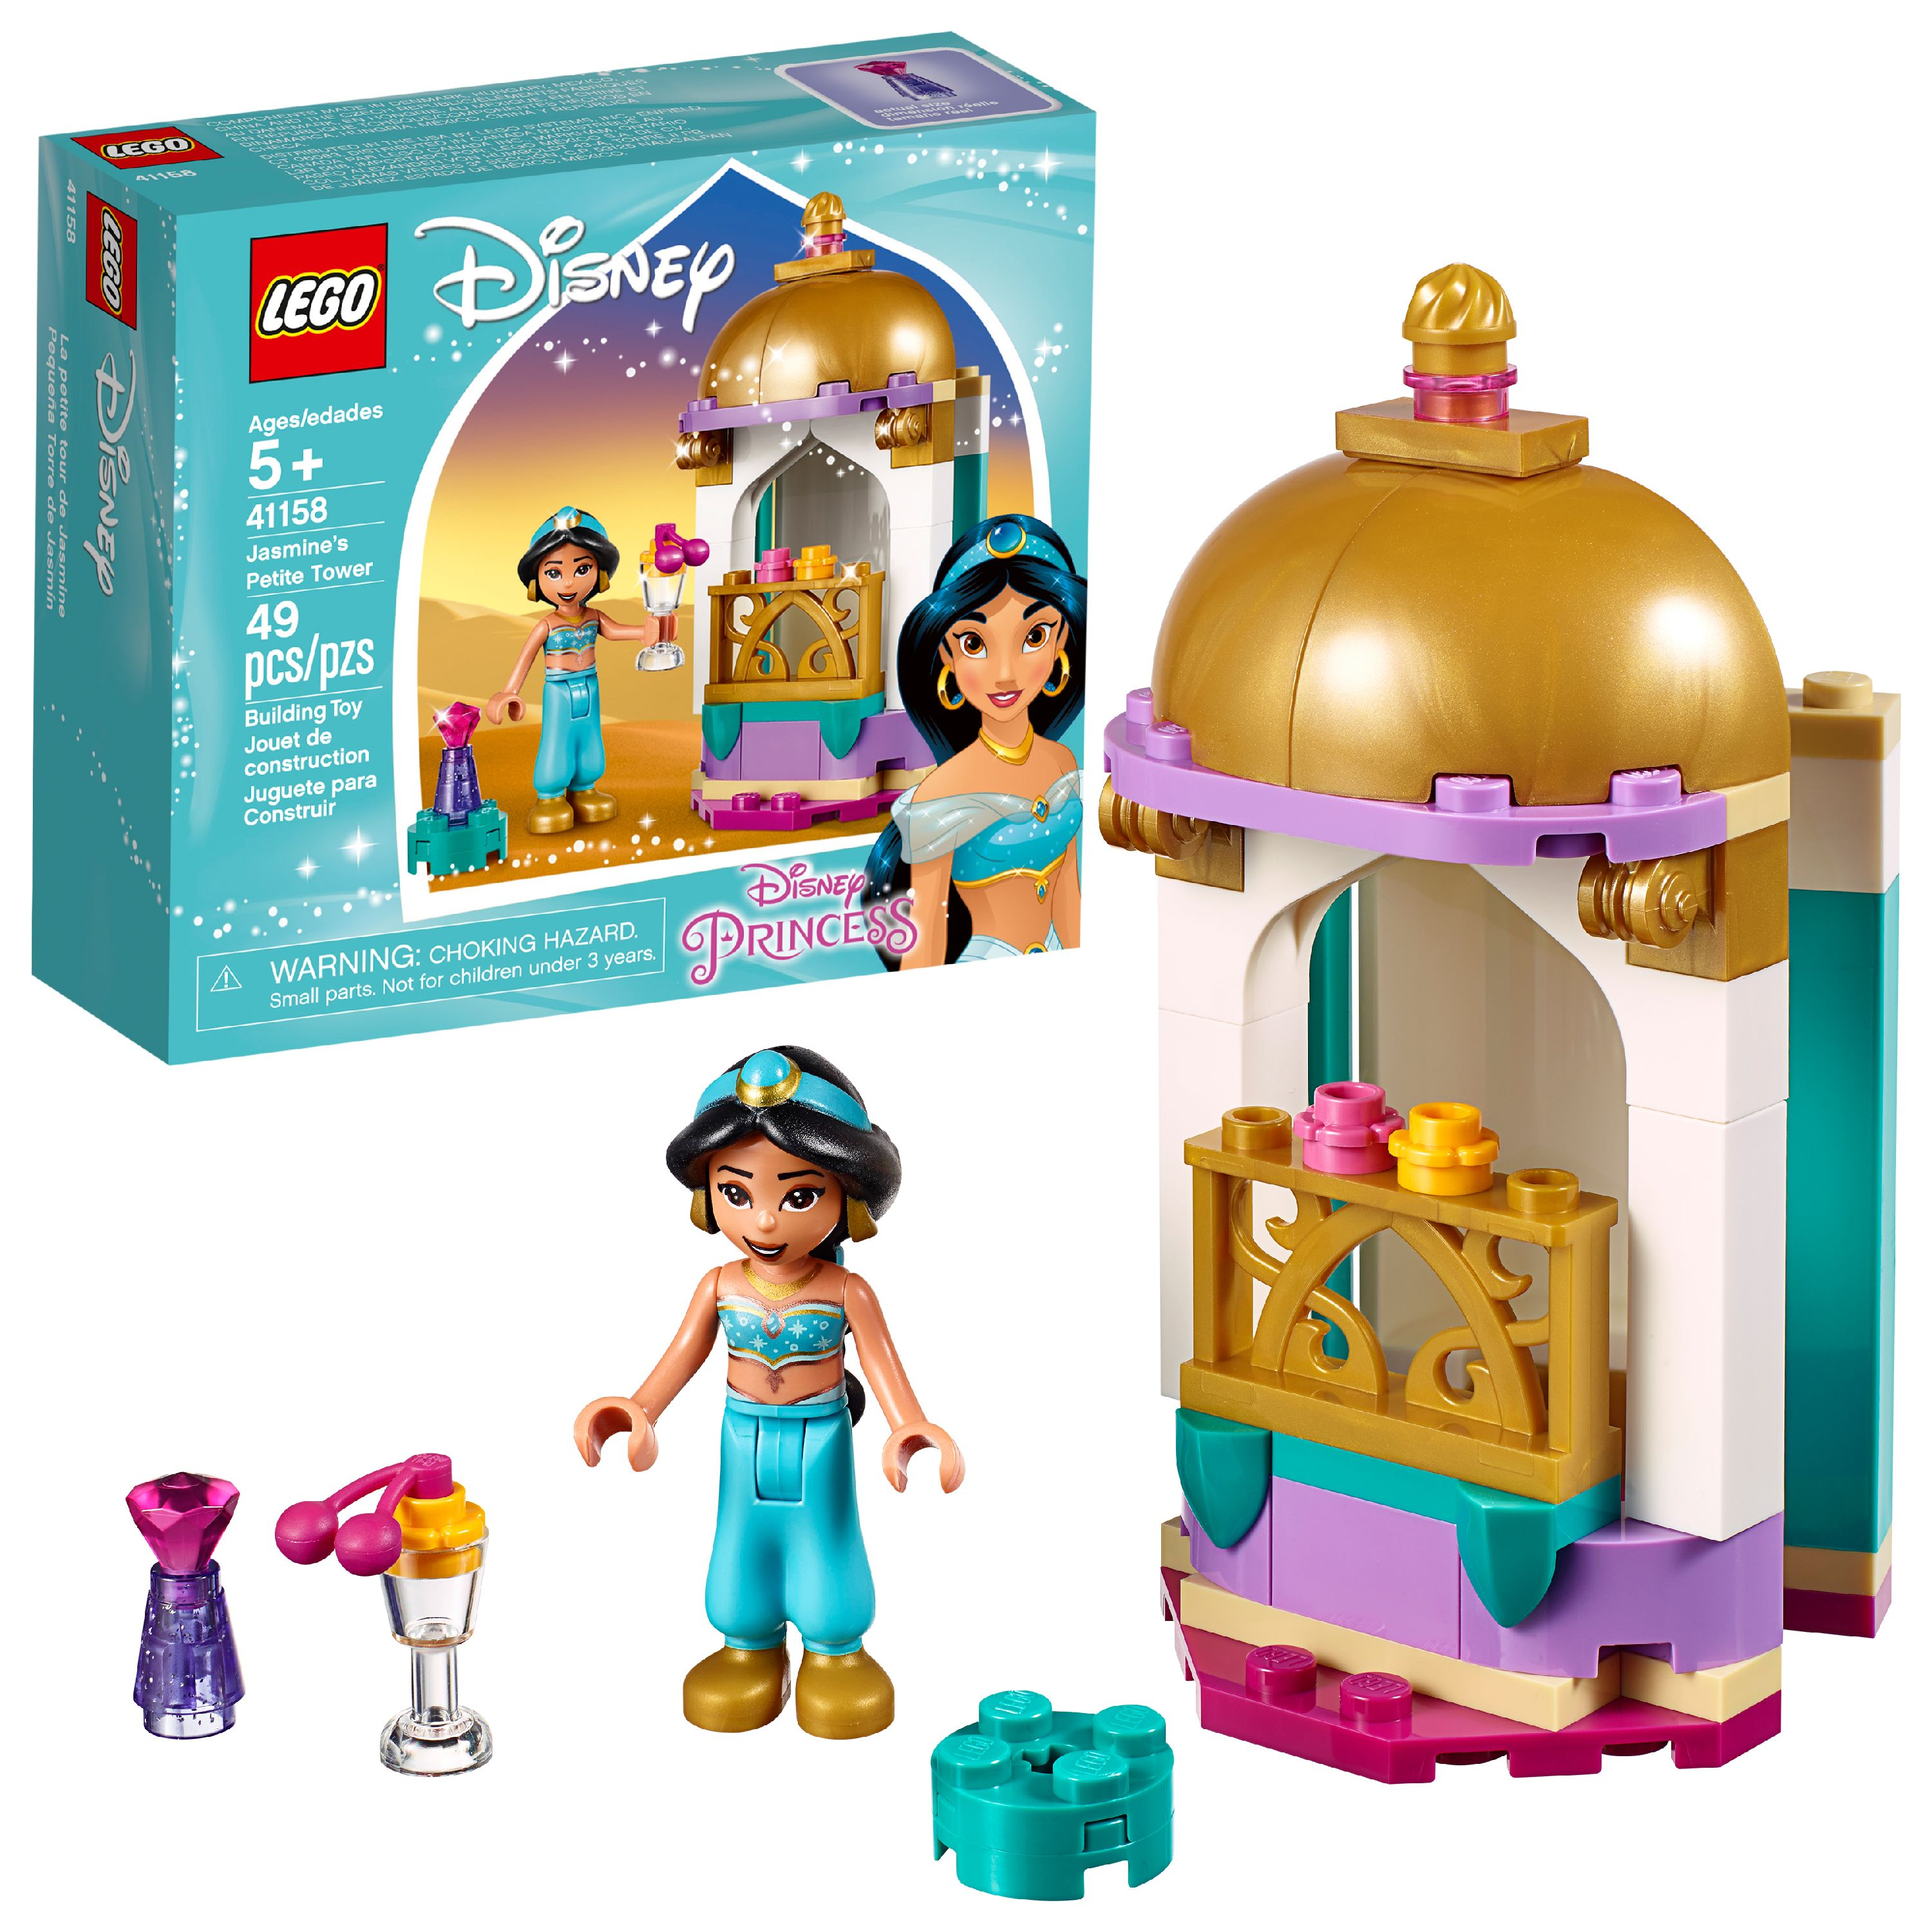 LEGO Disney Princess Jasmine's Petite Tower 41158